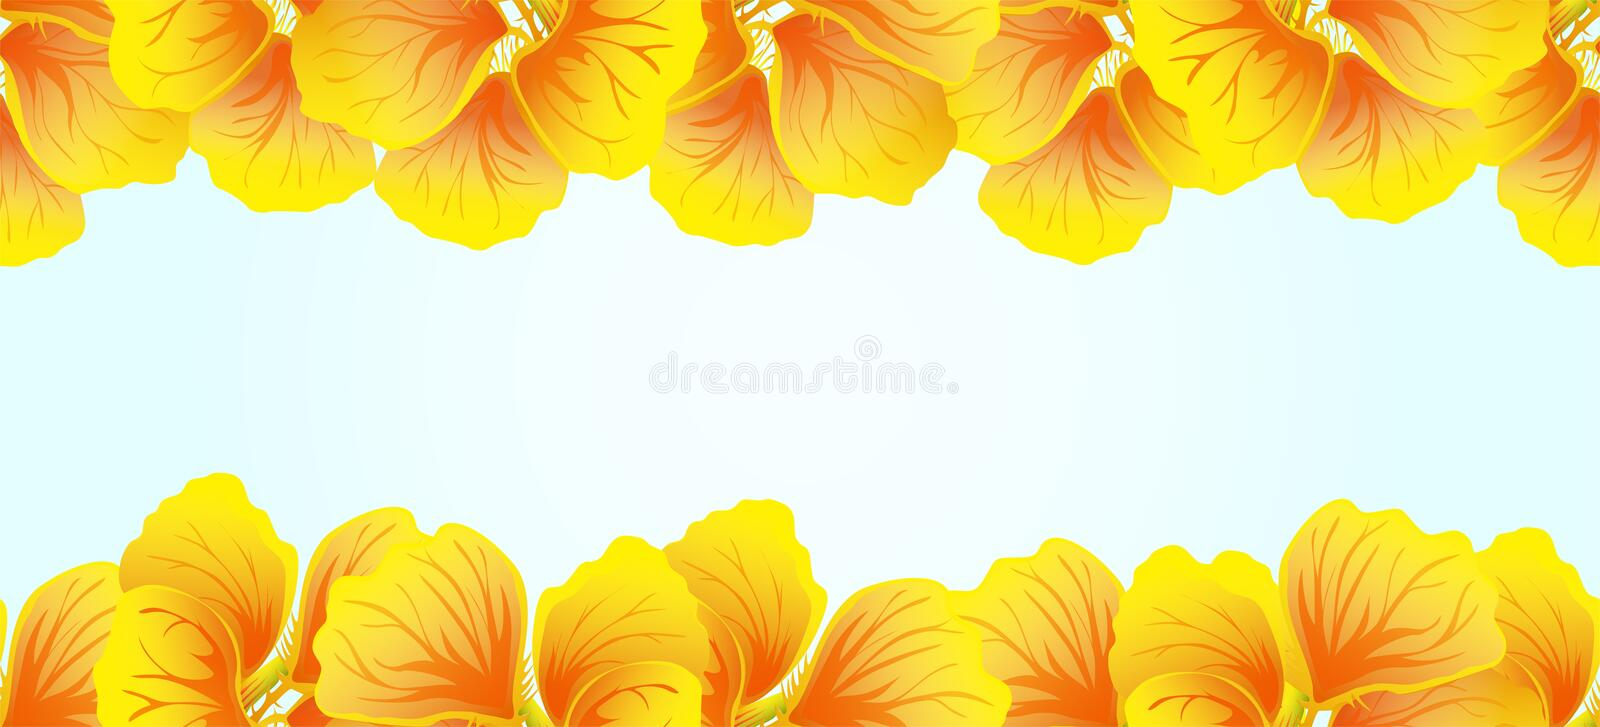 Bright Nasturtium Seamless border. Yellow flowers. Beautiful Horizontal banner. Blue background. Card, invitation, poster vector illustration